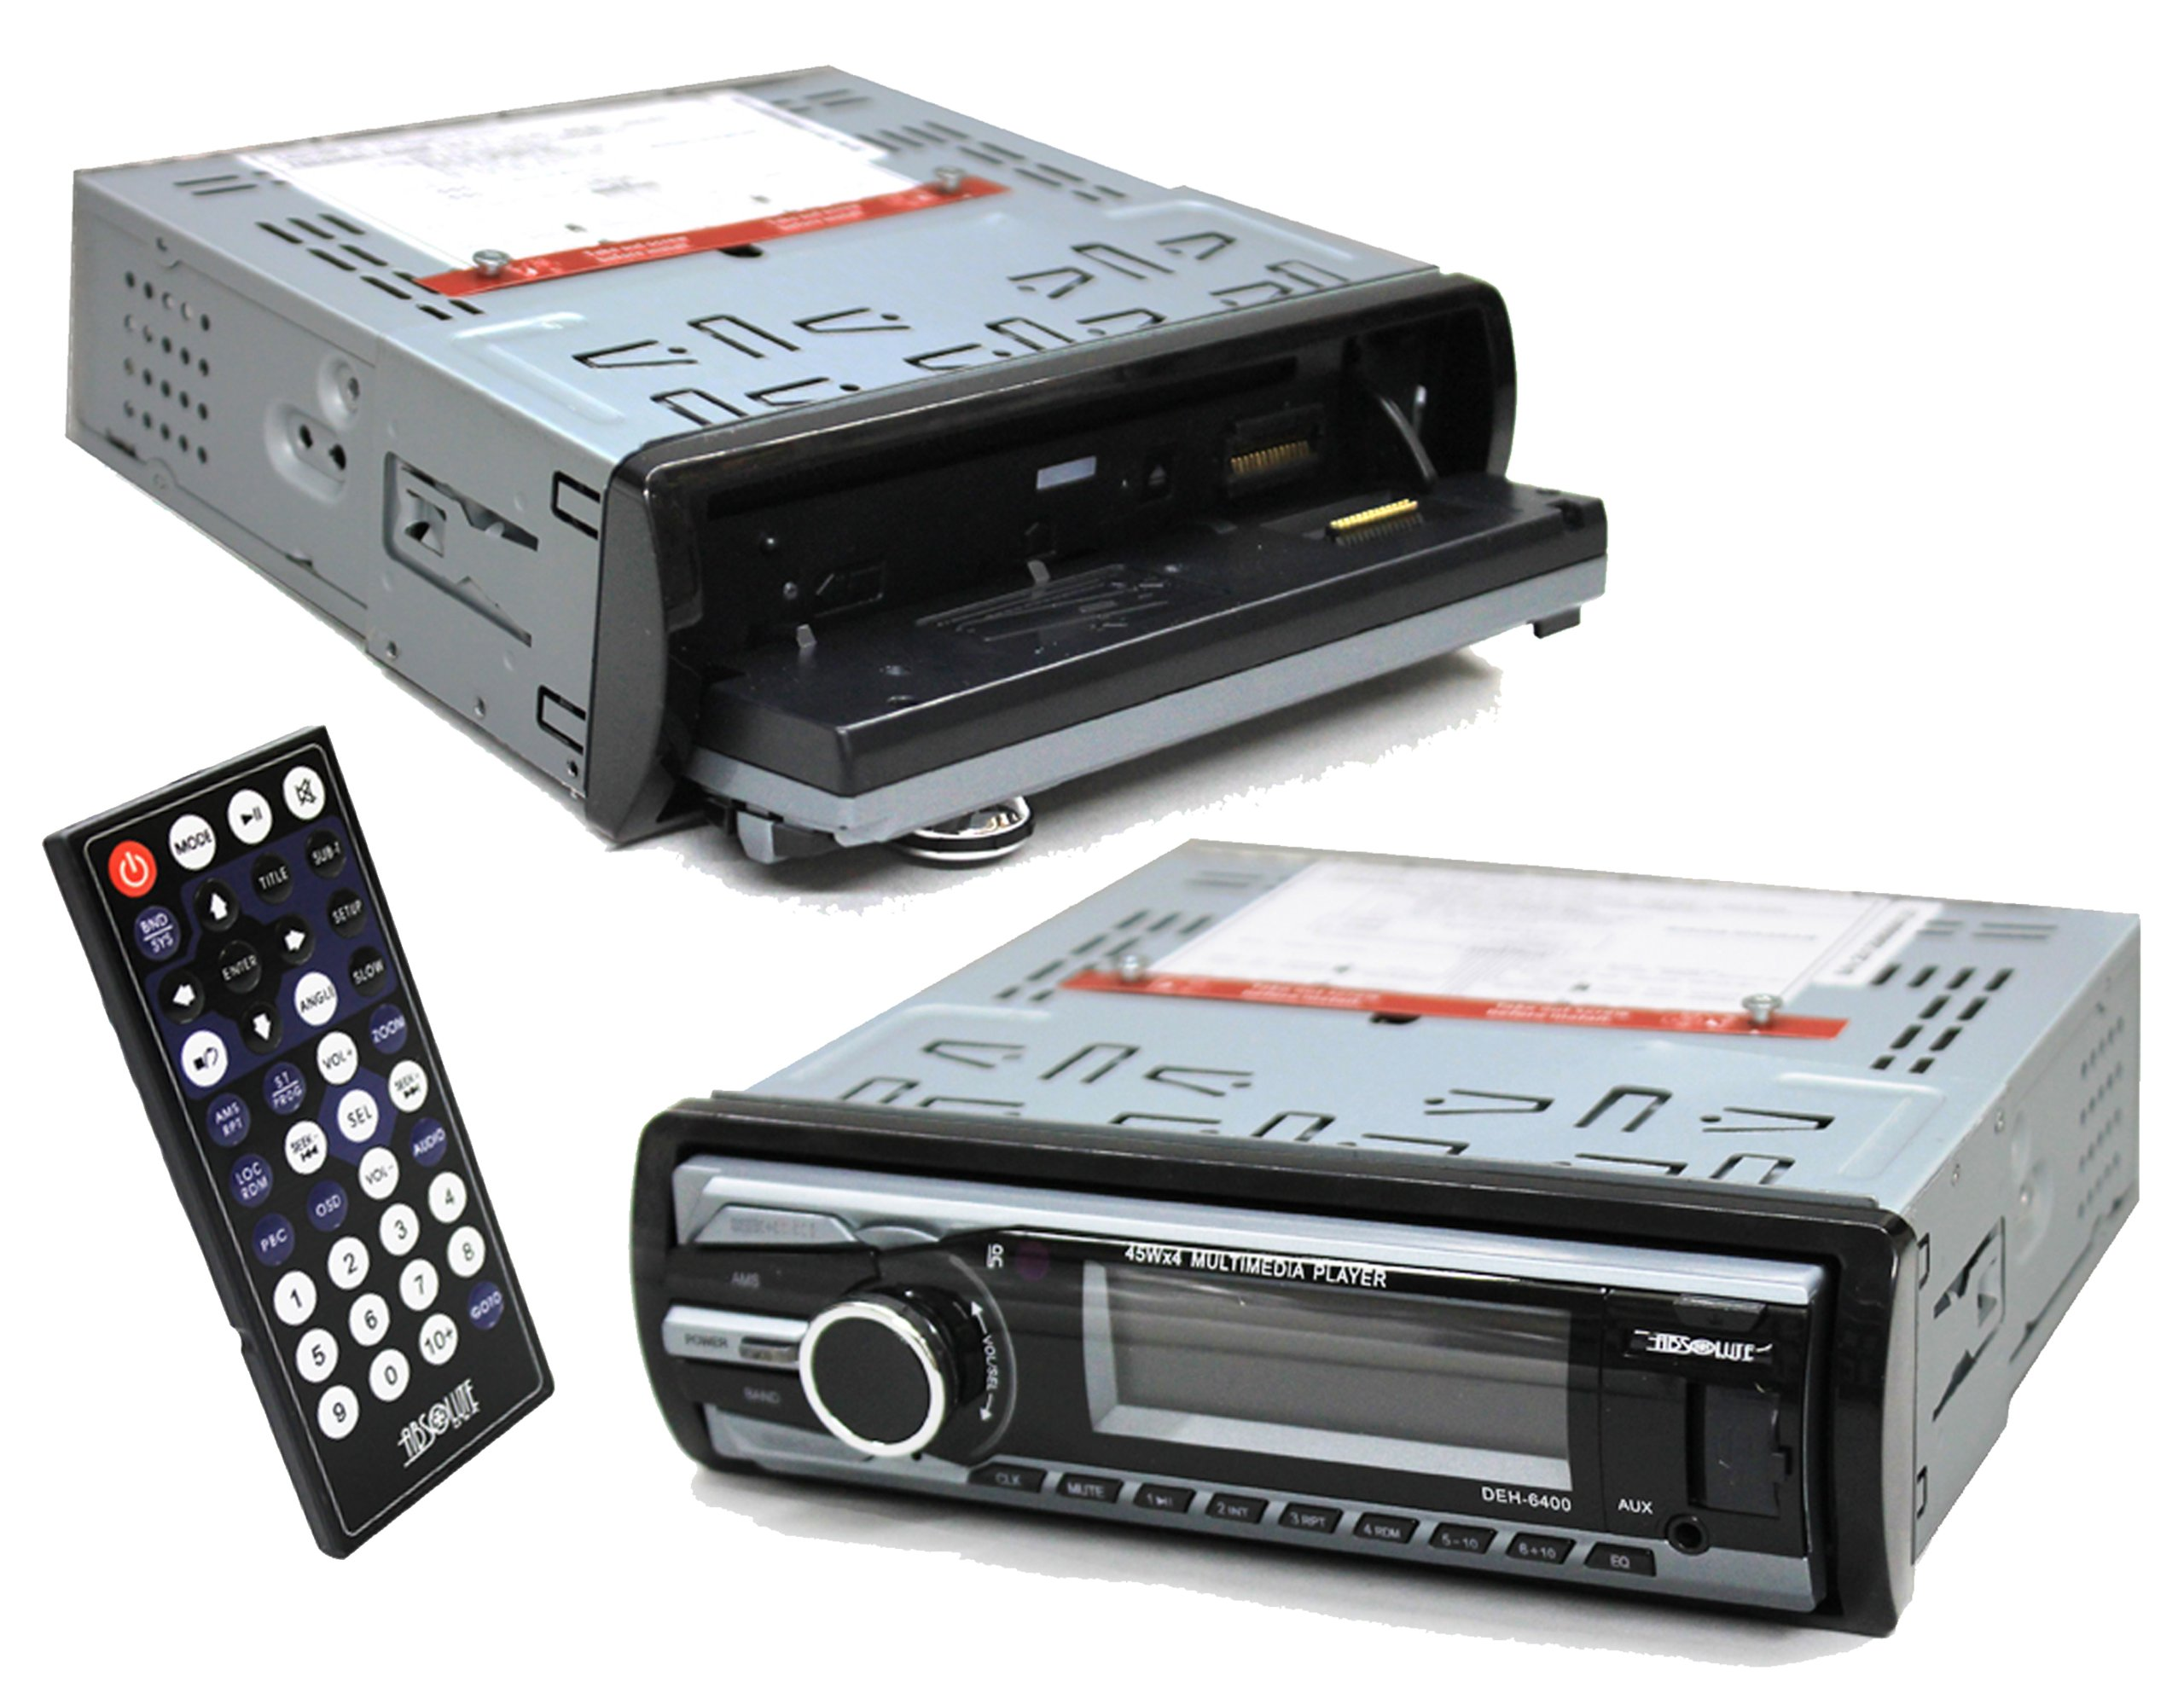 Absolute DEH-6400 In Dash Receiver with USB/SD Card Slot and Multimedia Player DVD/MP3/MP4/CD/CD-R/CD-RW/WMA